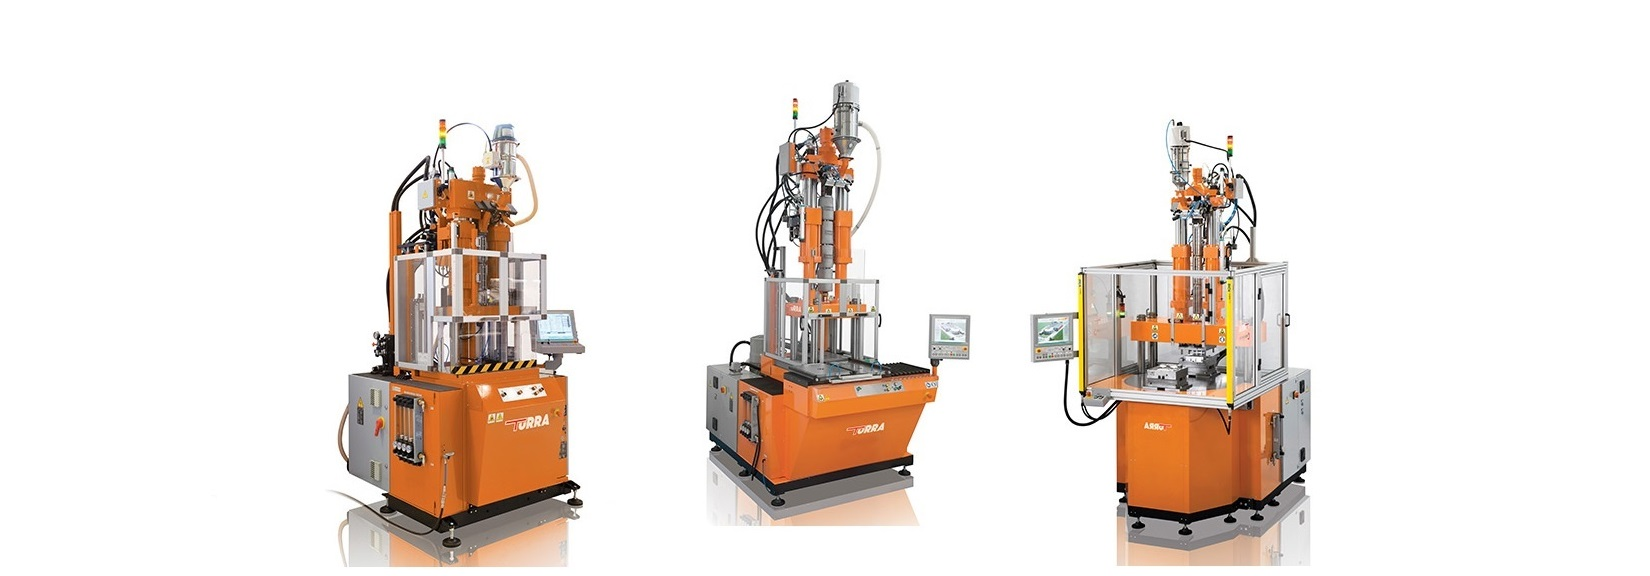 Presse a injection verticale